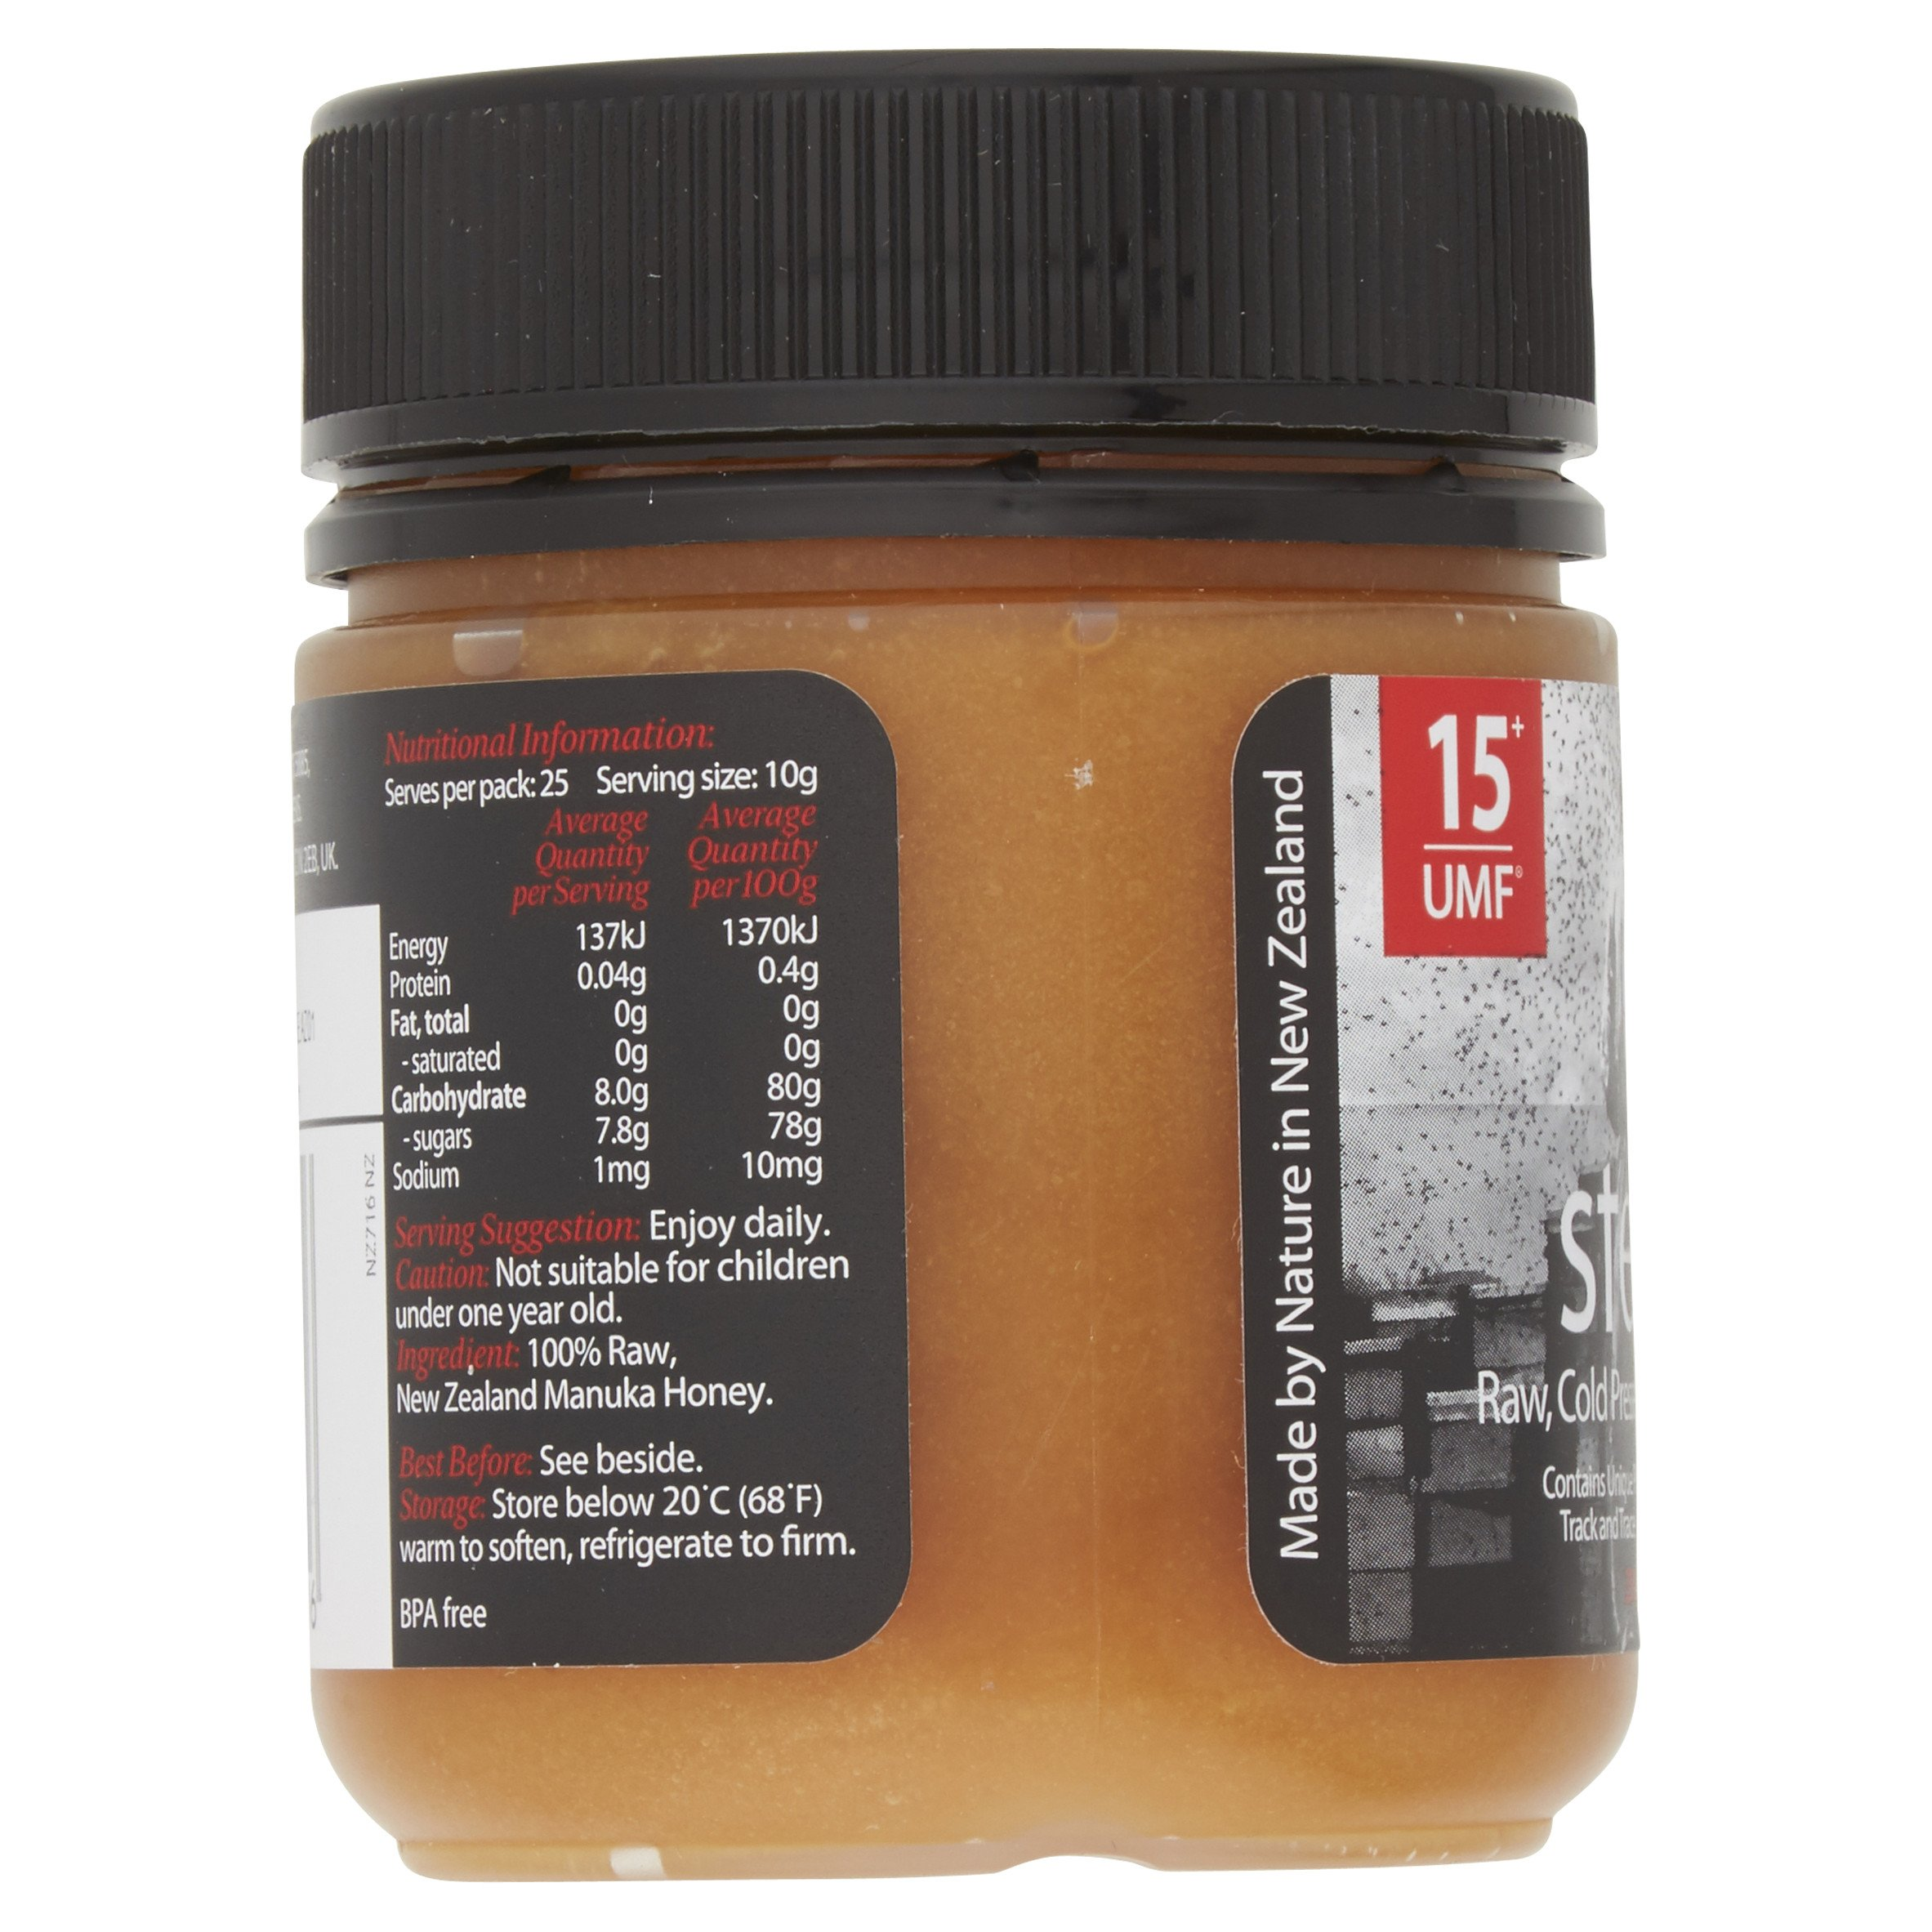 Steens Manuka Honey UMF 15 (MGO 514) 8.8 Ounce jar | Pure Raw Unpasteurized Honey From New Zealand NZ | Traceability Code on Each Label by Steens (Image #3)